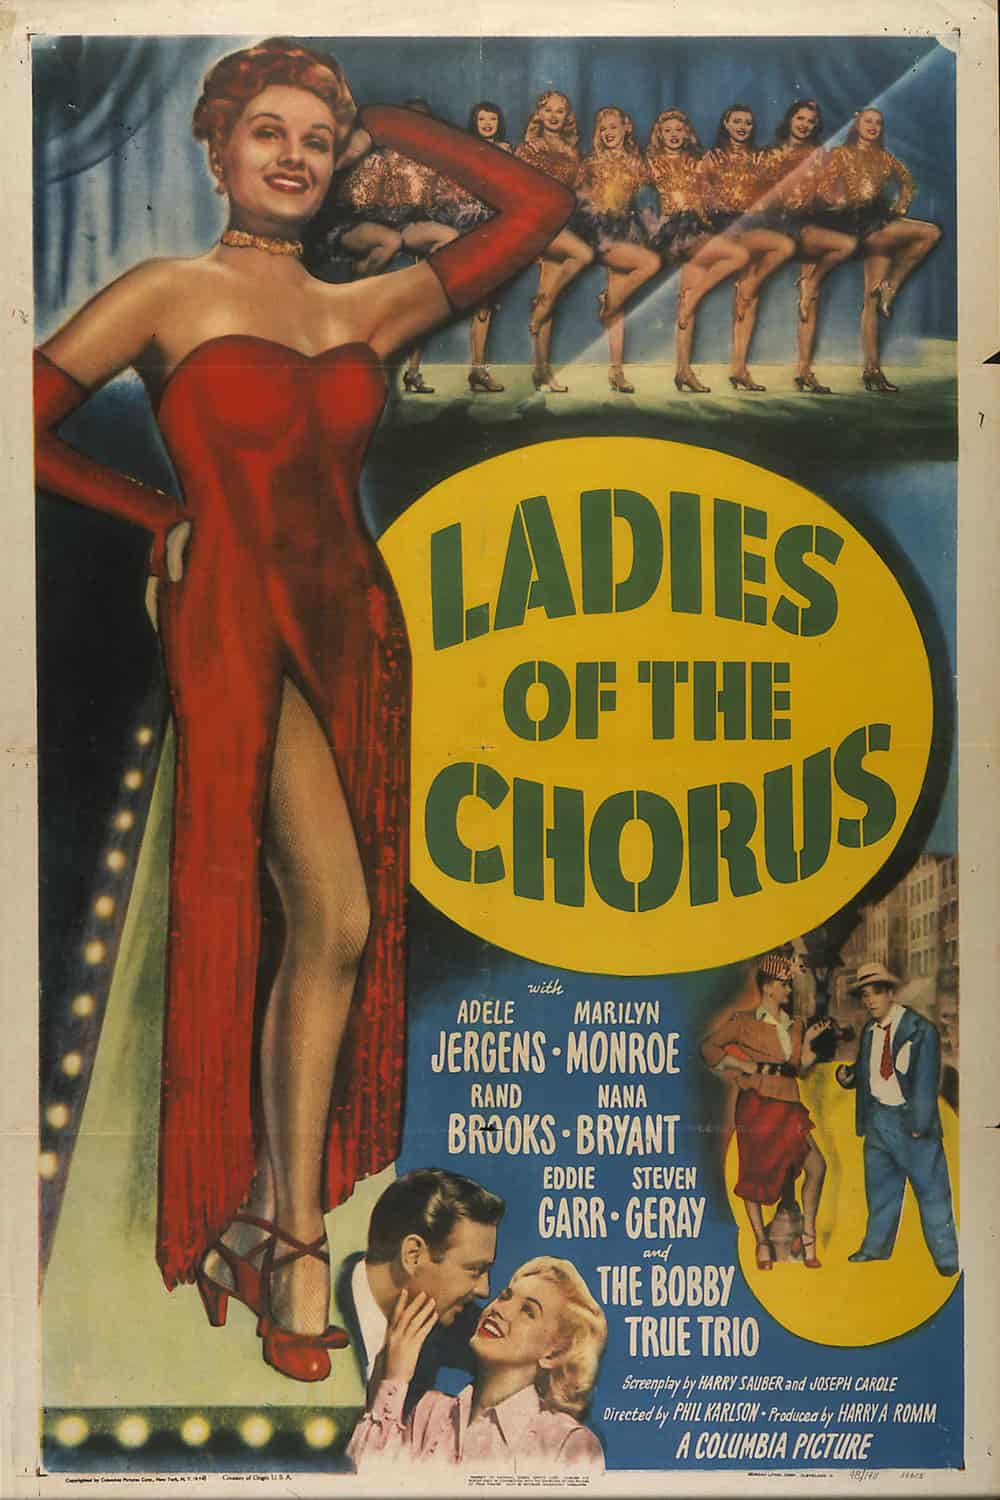 Ladies of the Chorus, 1948